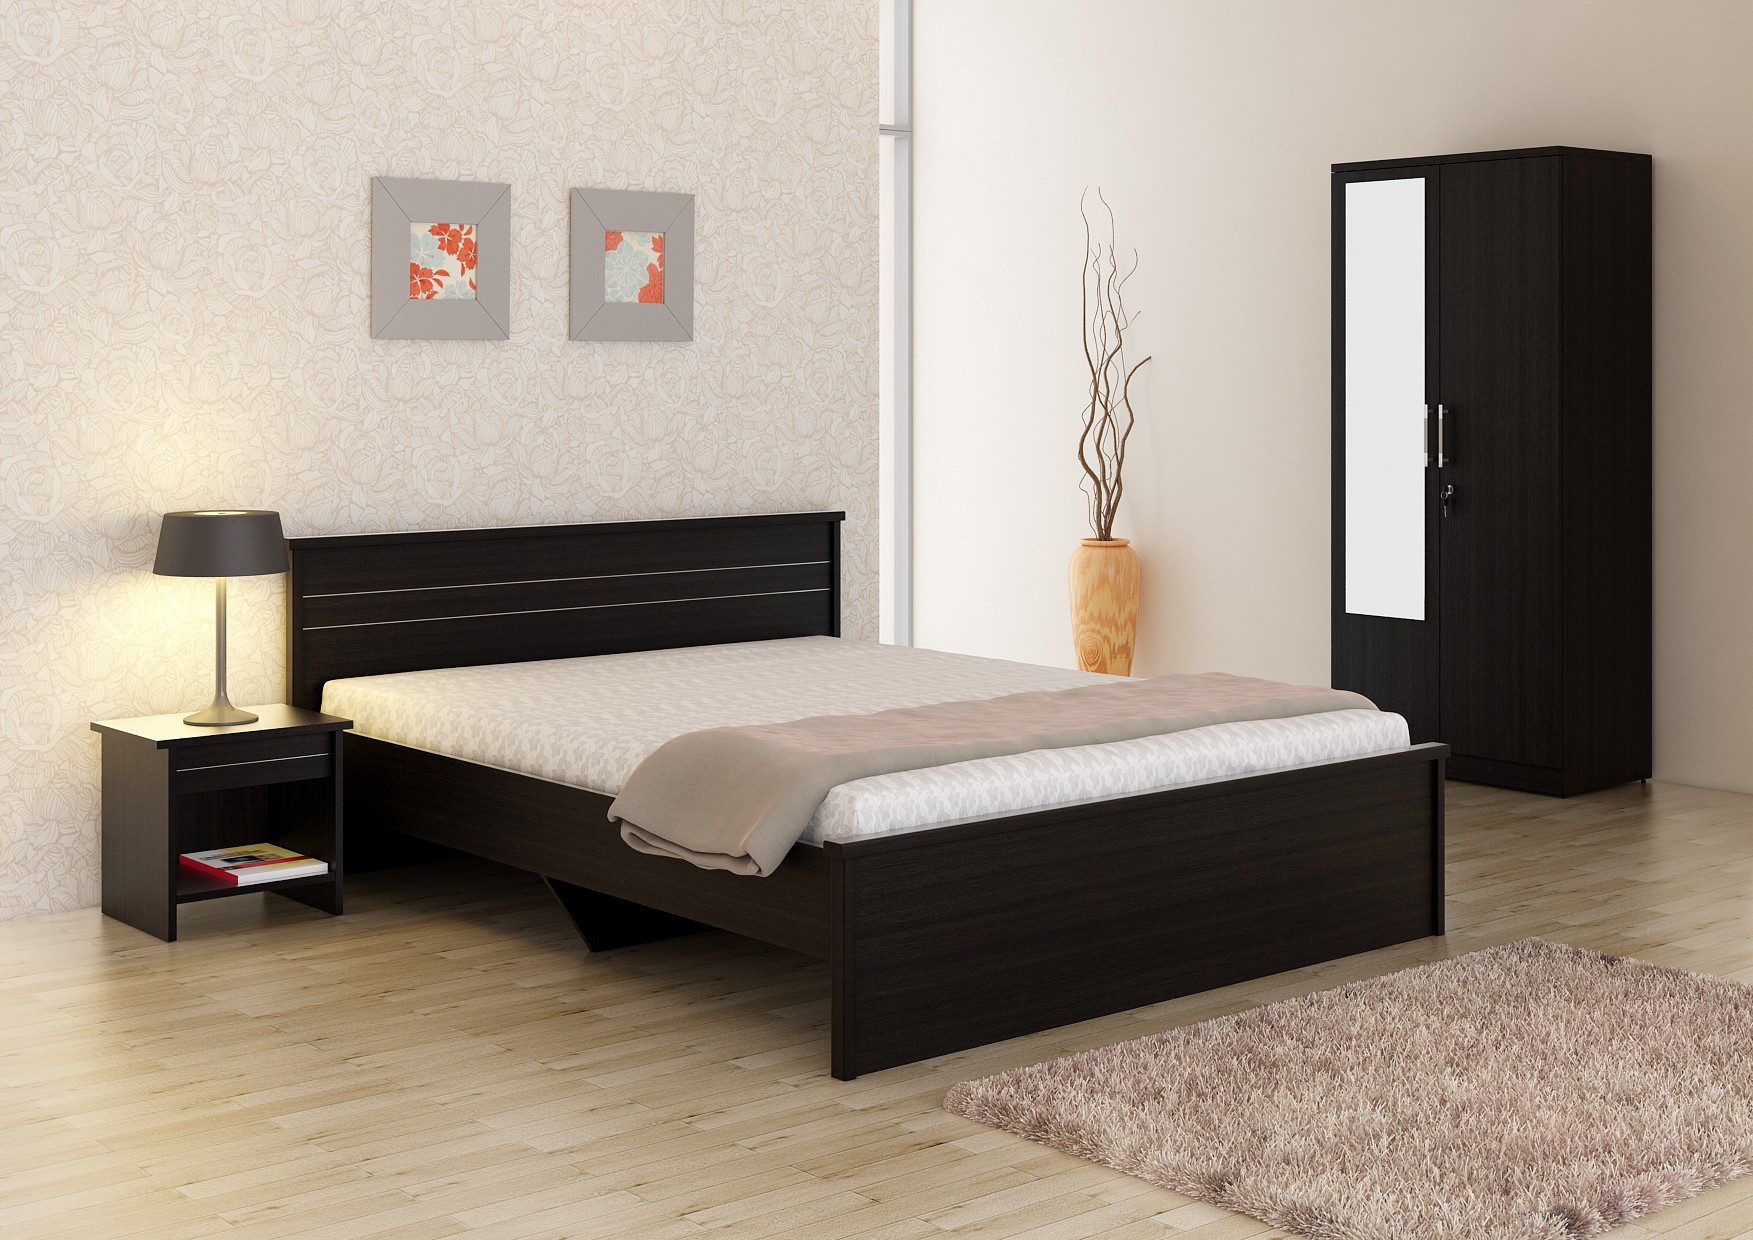 Spacewood engineered wood bed side table wardrobe for Indian bedroom furniture designs